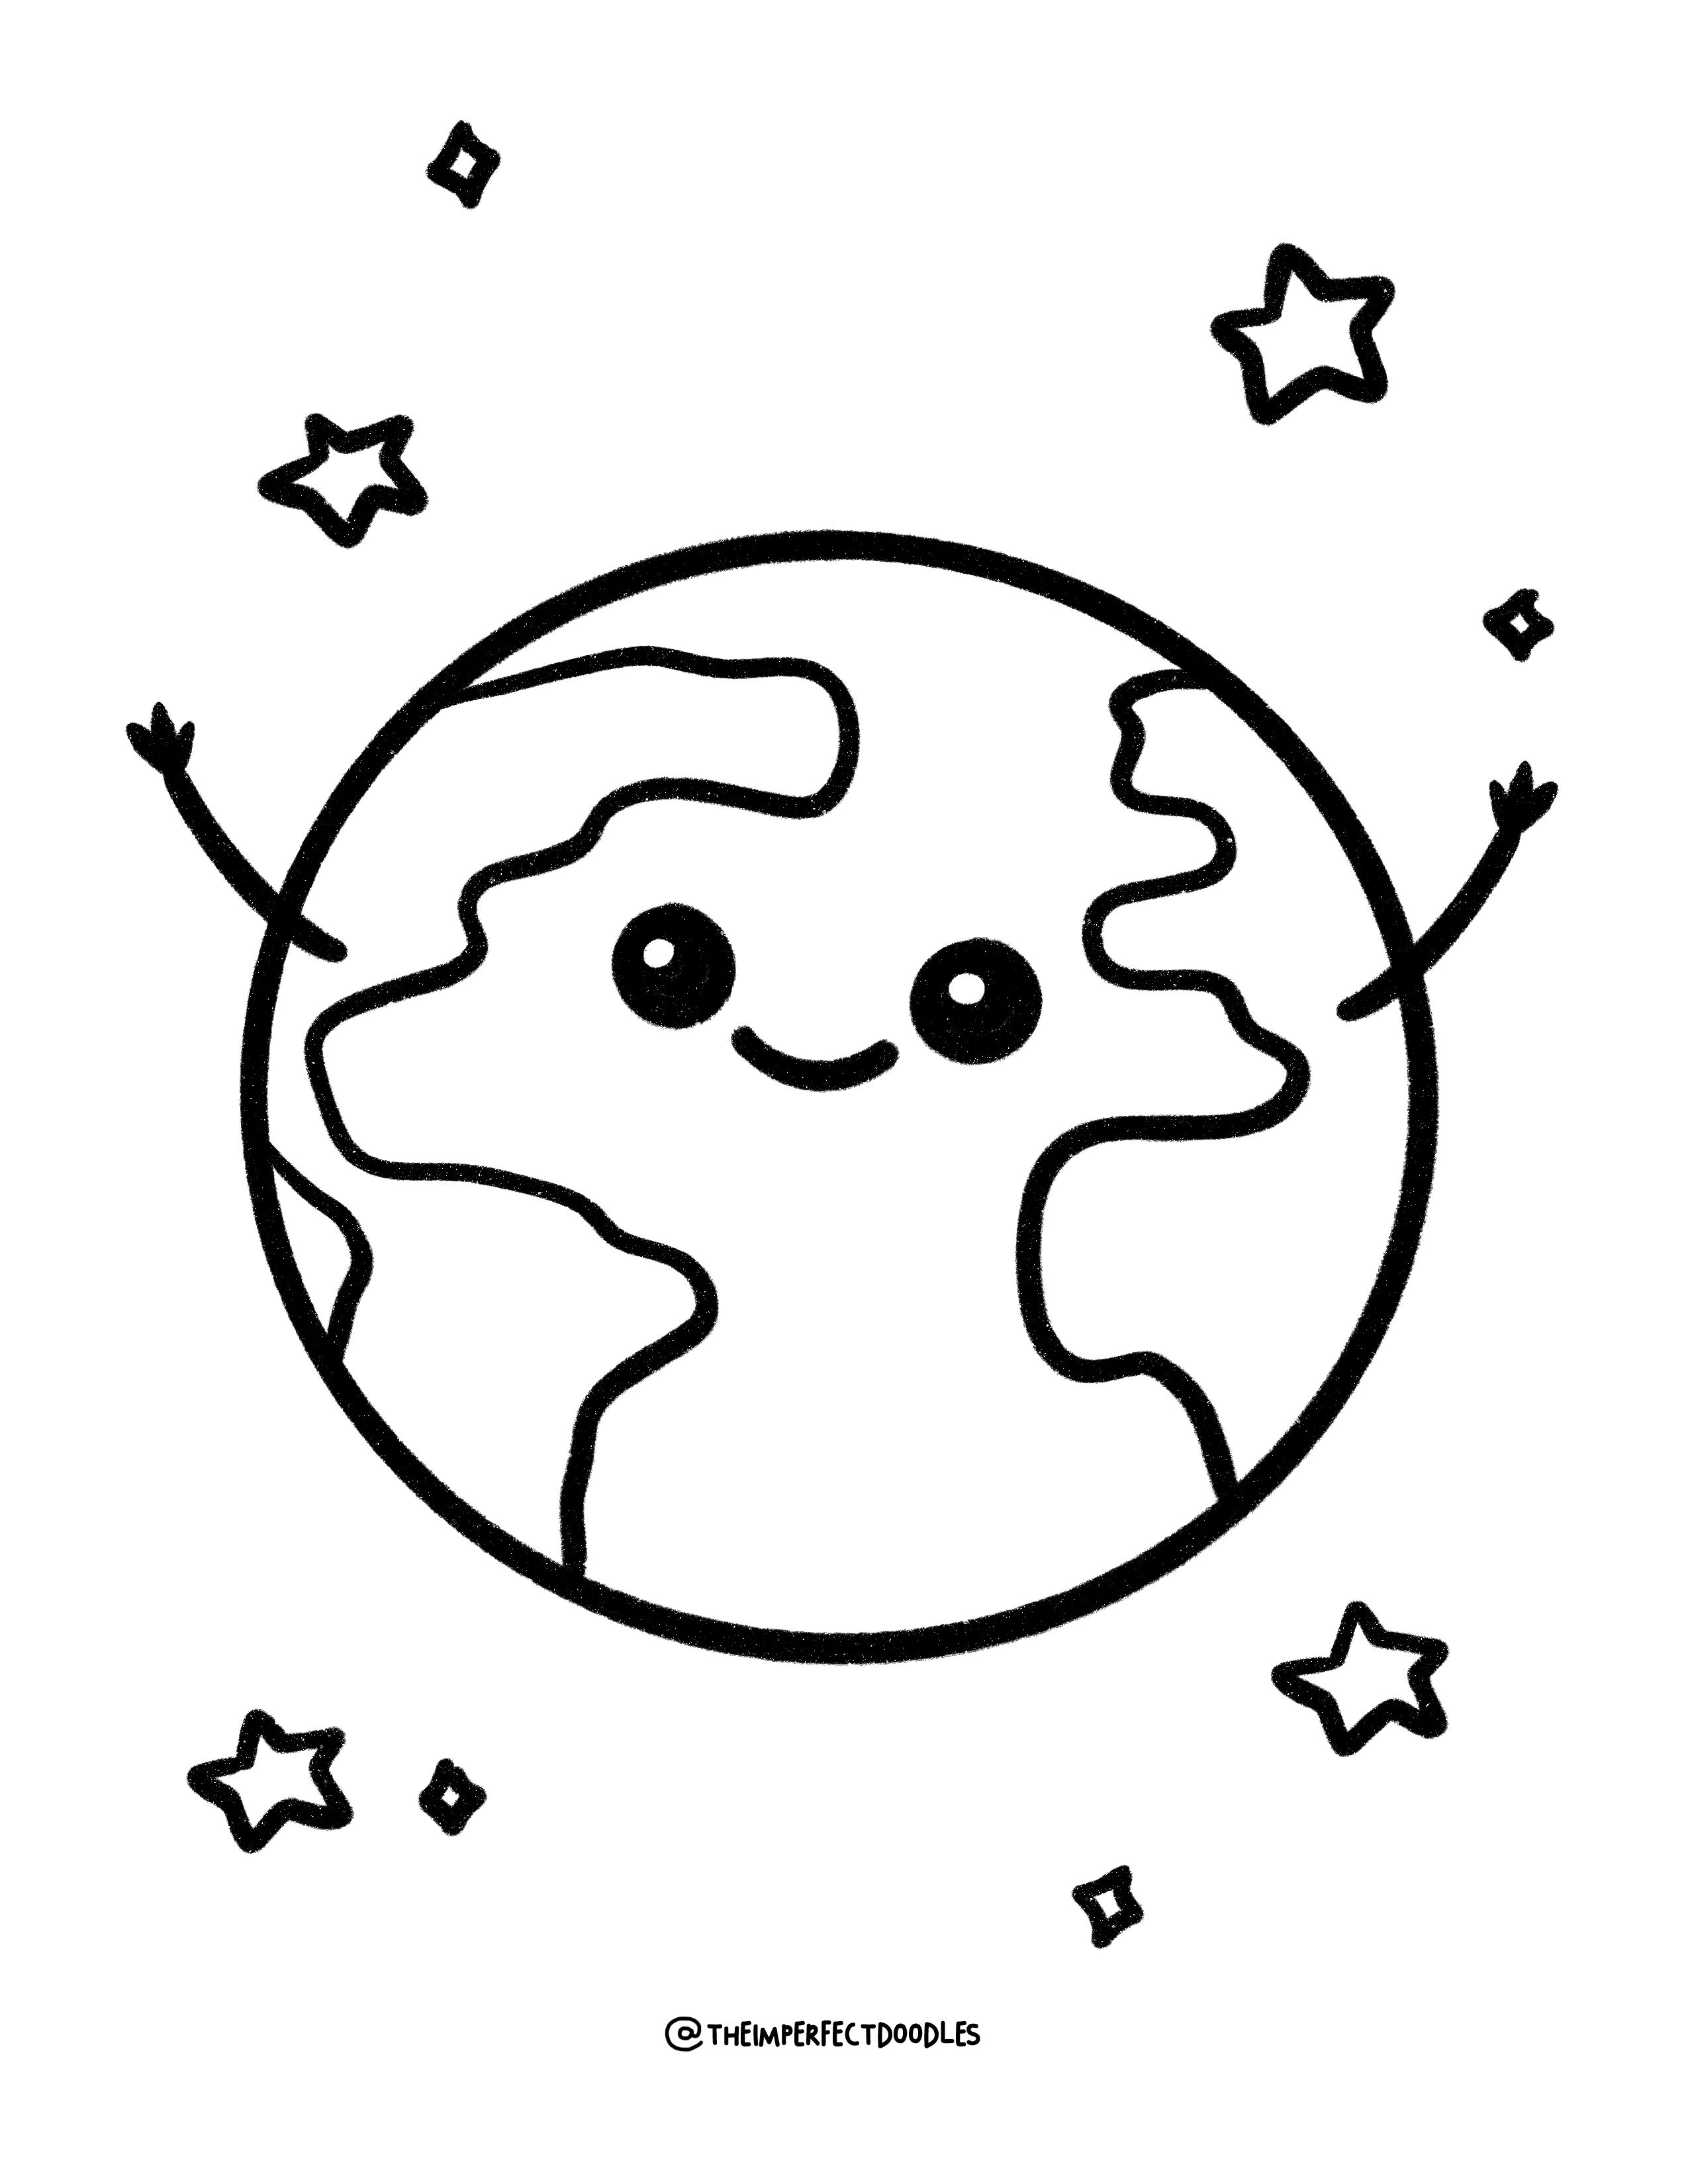 Printable Nature Coloring Pages Earth Day Coloring Pages Etsy Earth Day Coloring Pages Coloring Pages Cool Coloring Pages